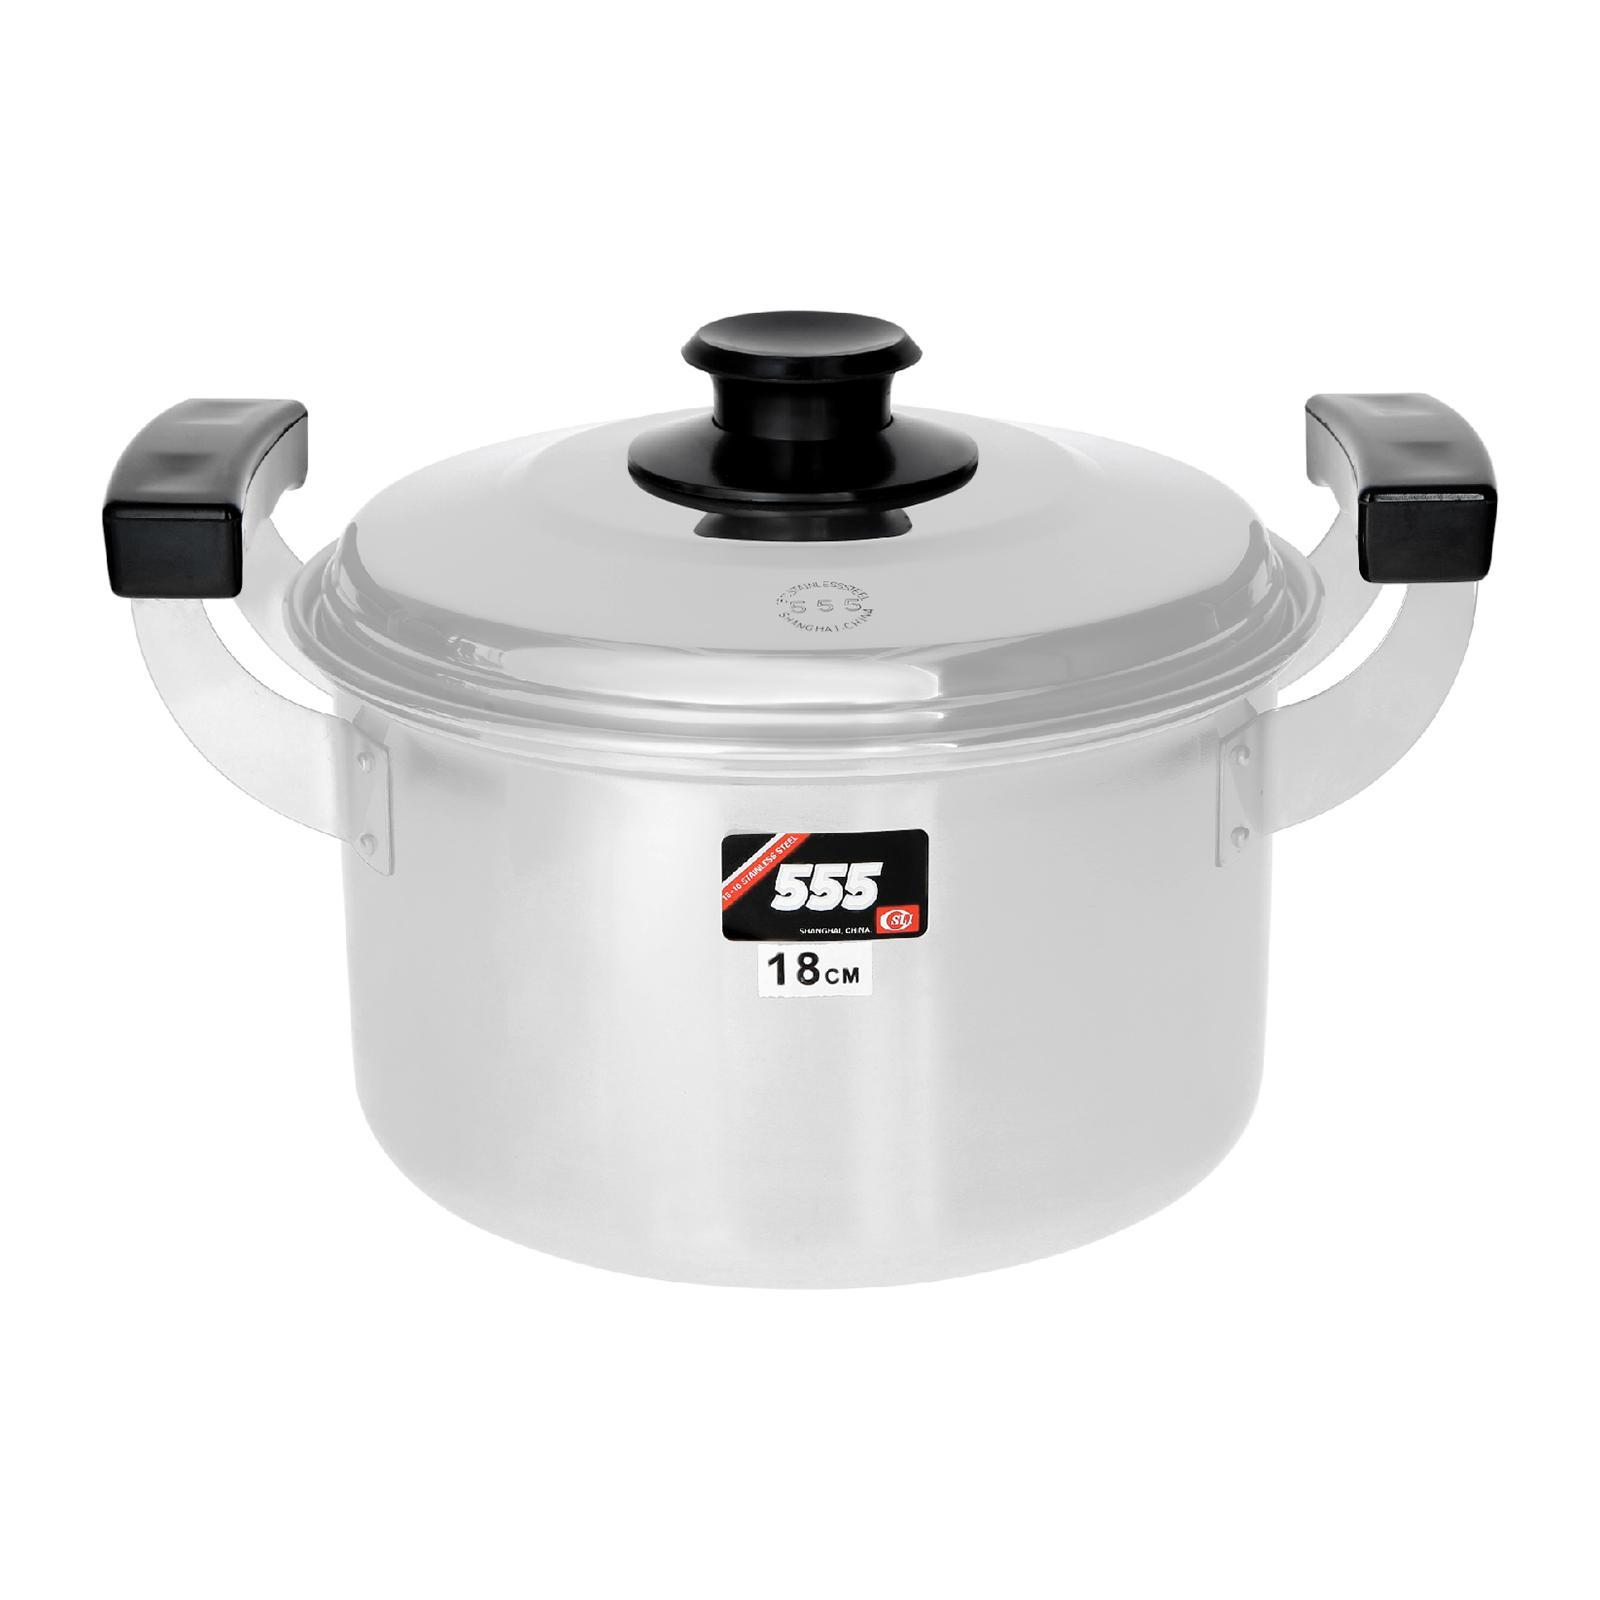 555 Classic Stainless Steel Cooking Pot 18CM